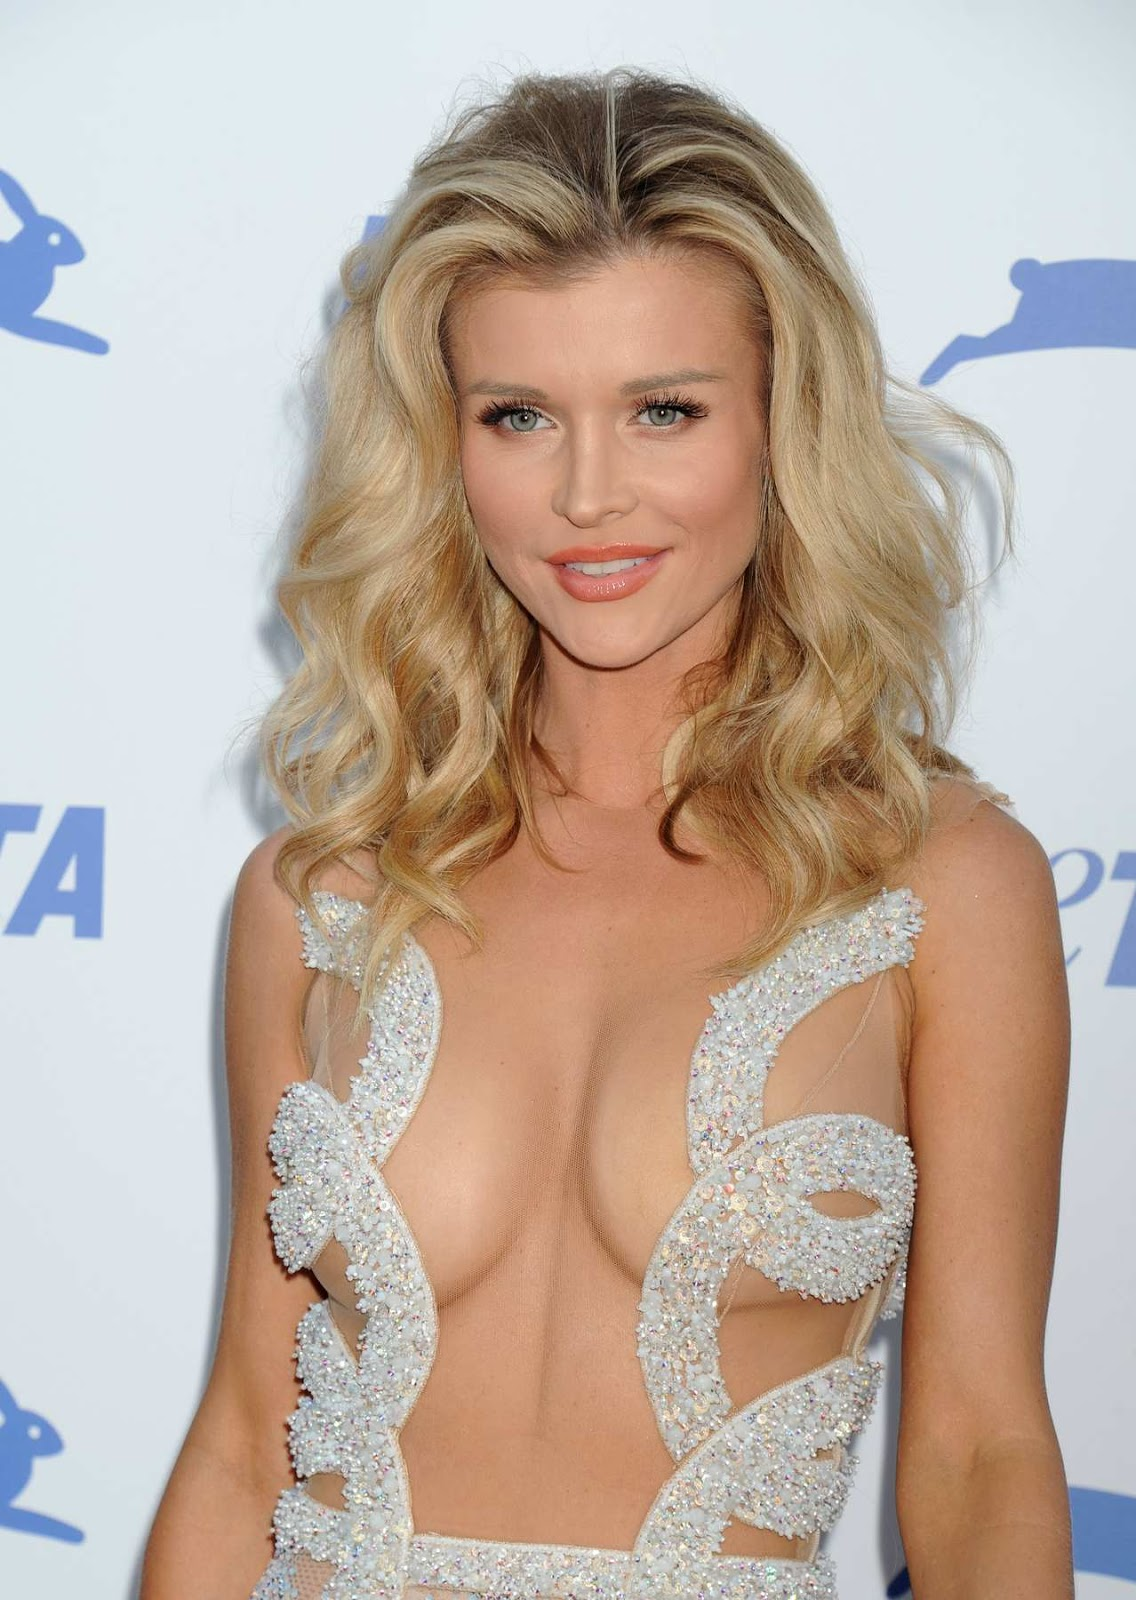 Necessary joanna krupa being fucked Clever things